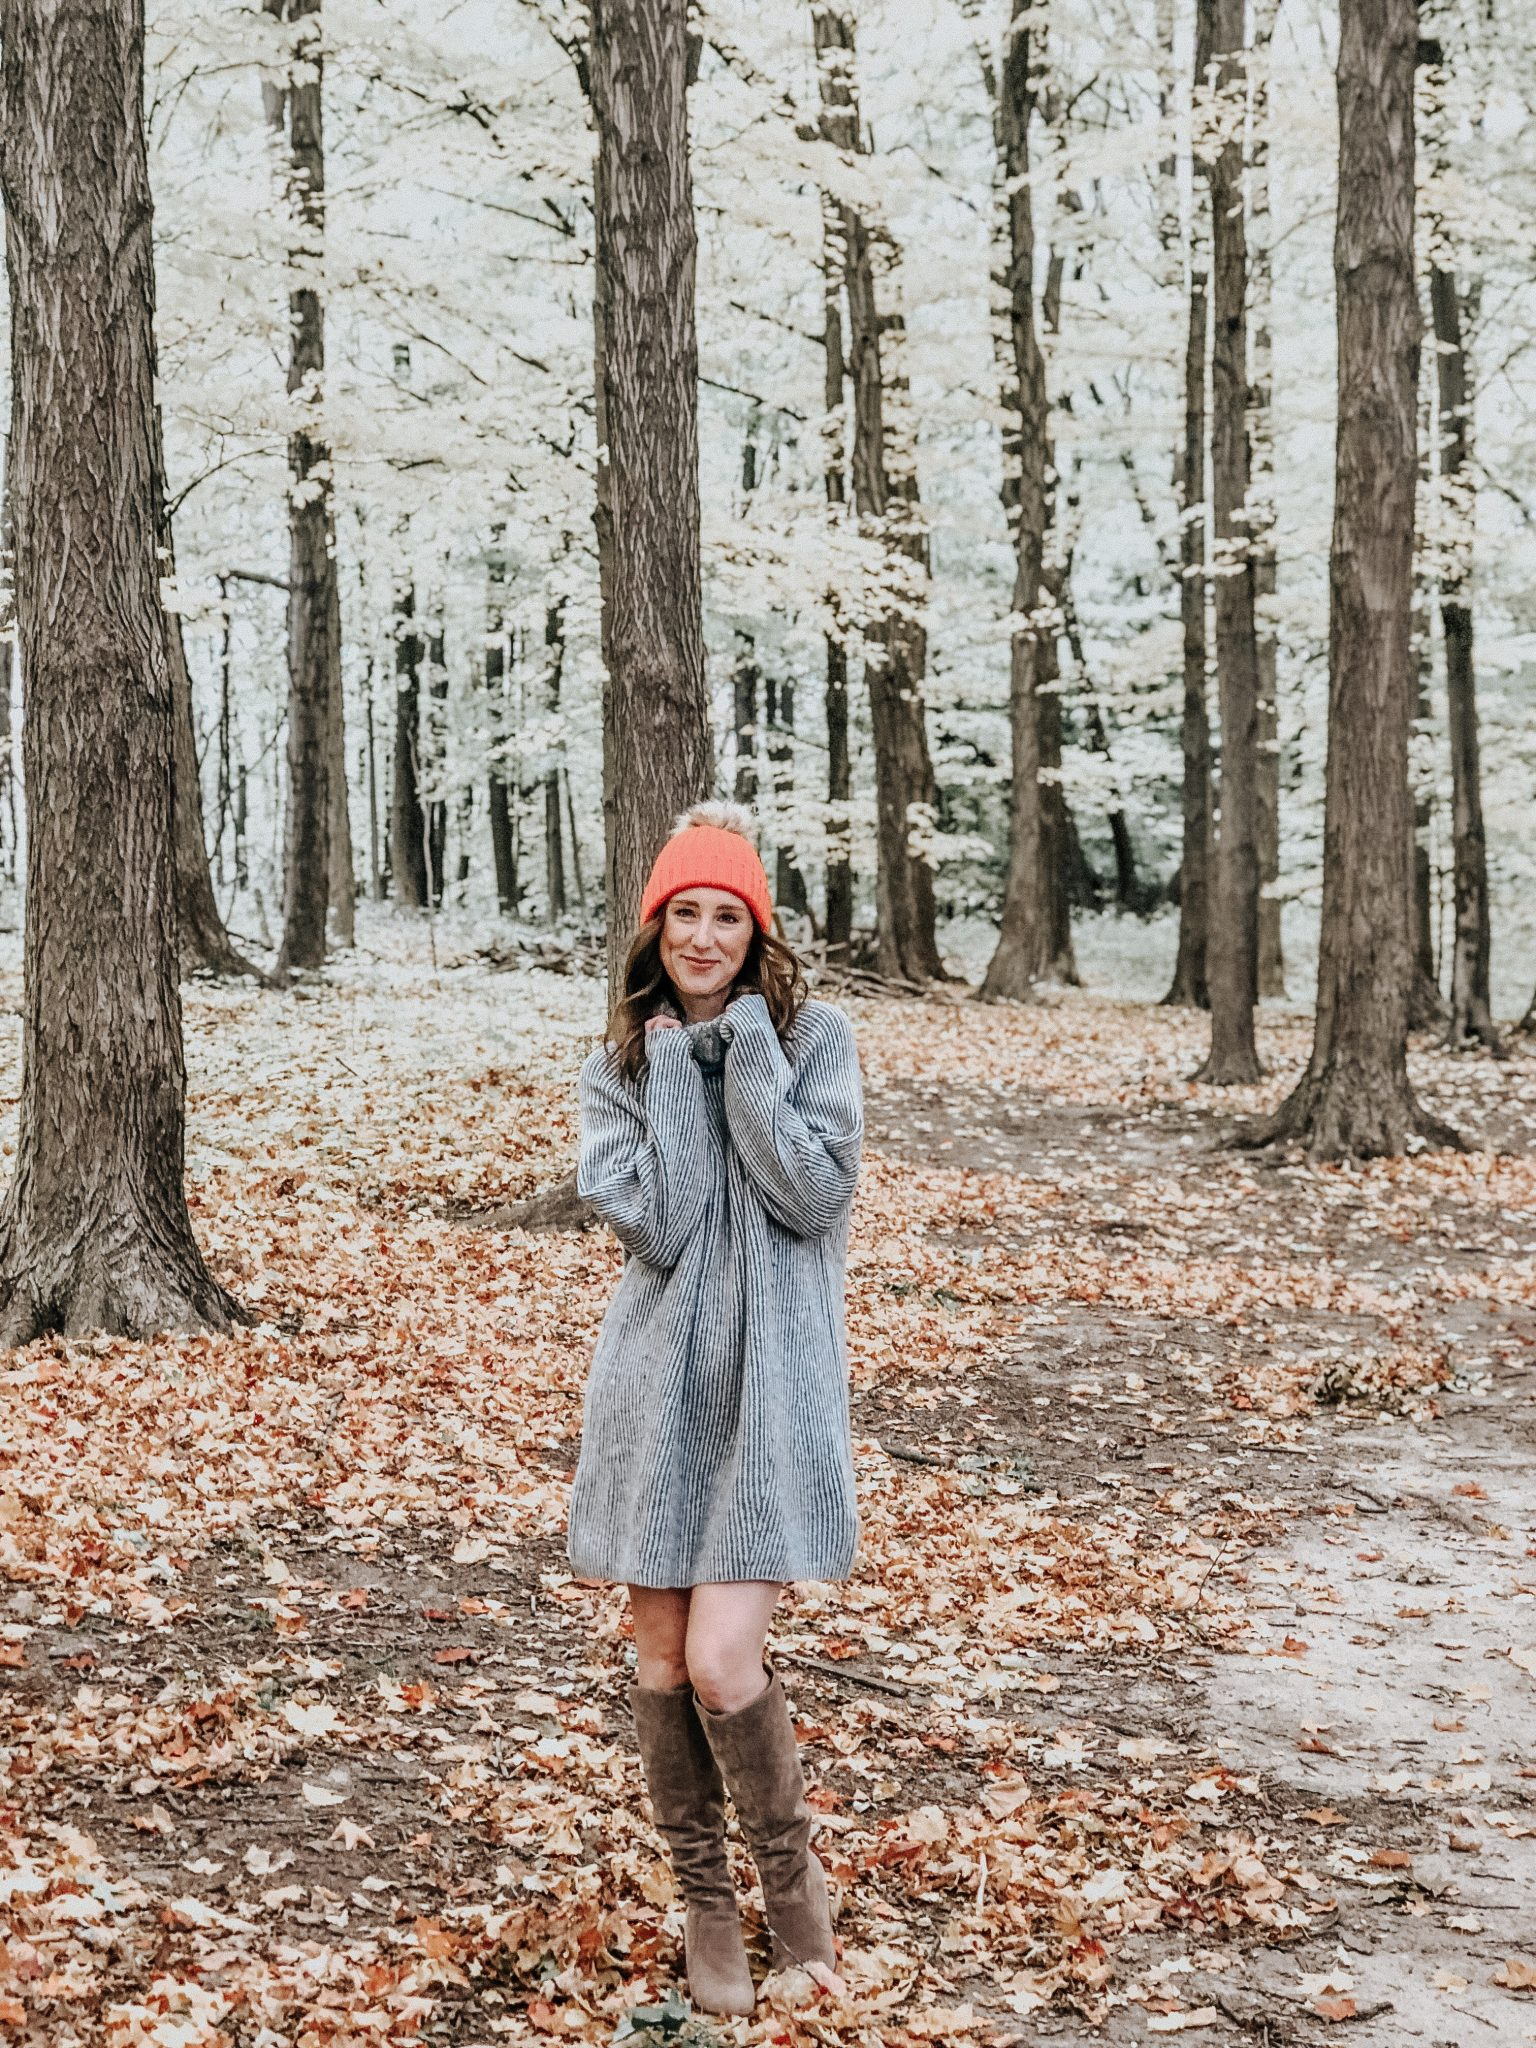 Winter sweater roundup | Daily Splendor Life and Style Blog | sweater dress #wintersweaters #fallsweater #turtlenecksweater #cozysweaters #topshop #nordstrom #jcrew #winterfashion #womensclothes #holidayoutfit